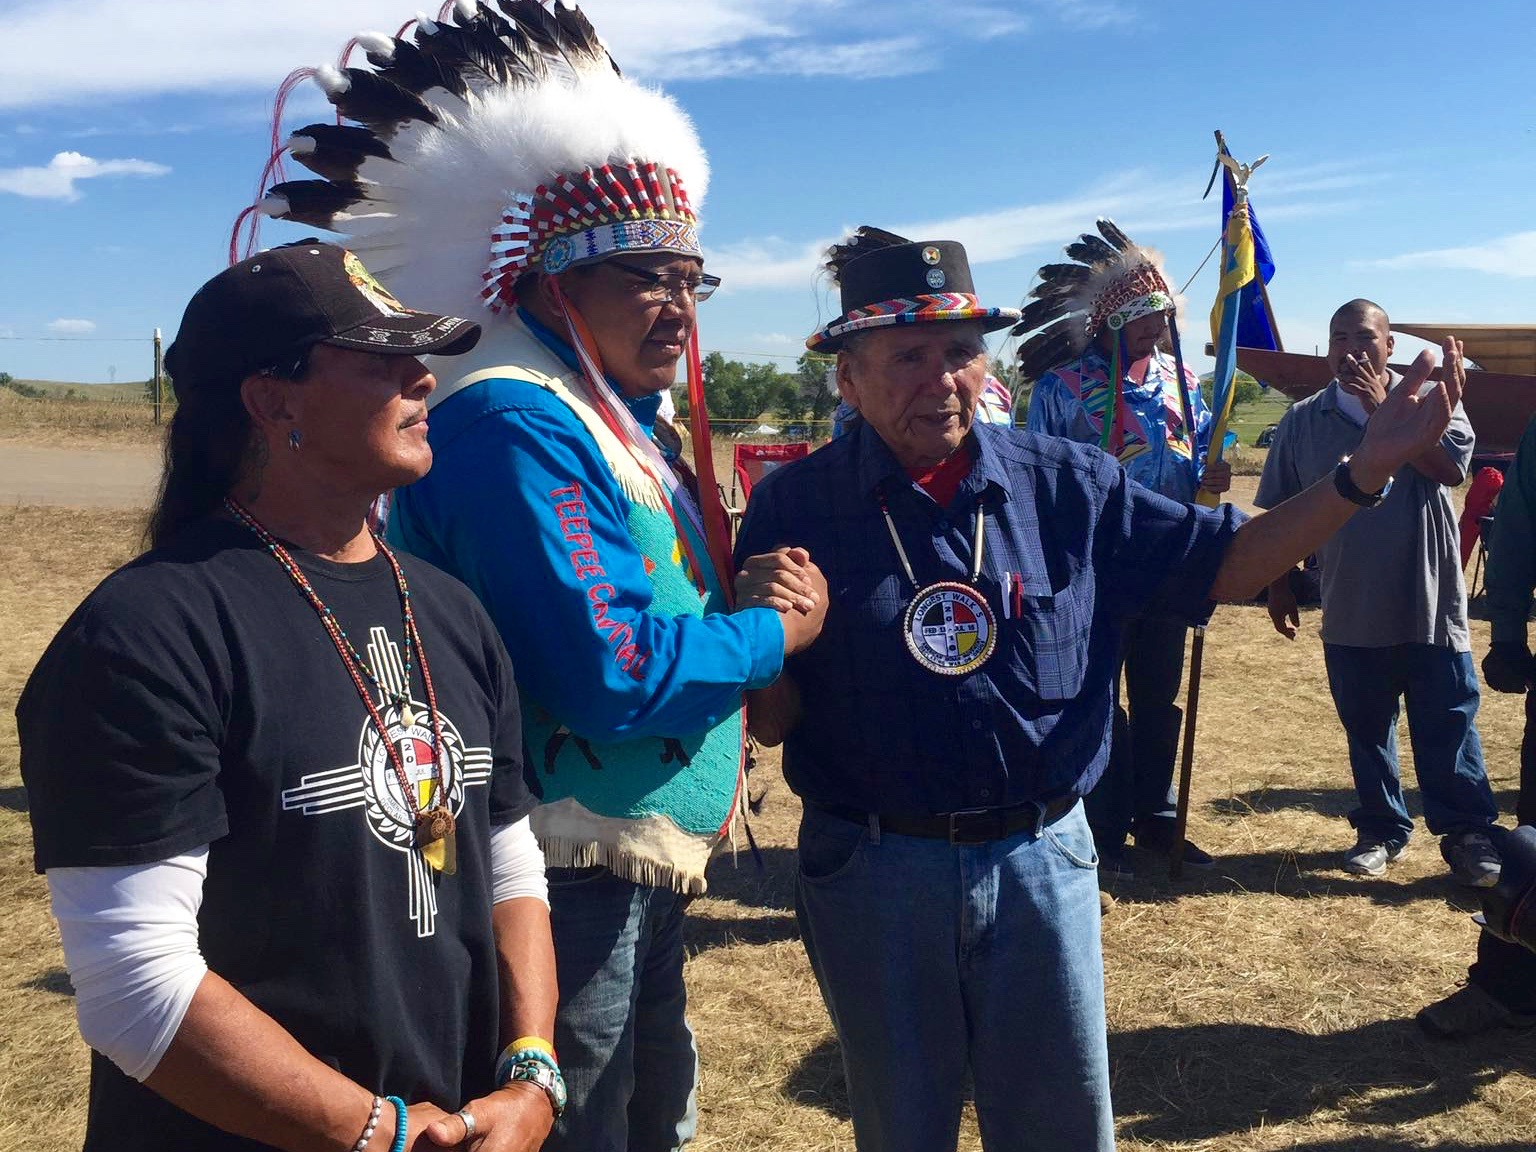 Albert Bender: Tribes join together at Camp of the Sacred Stones